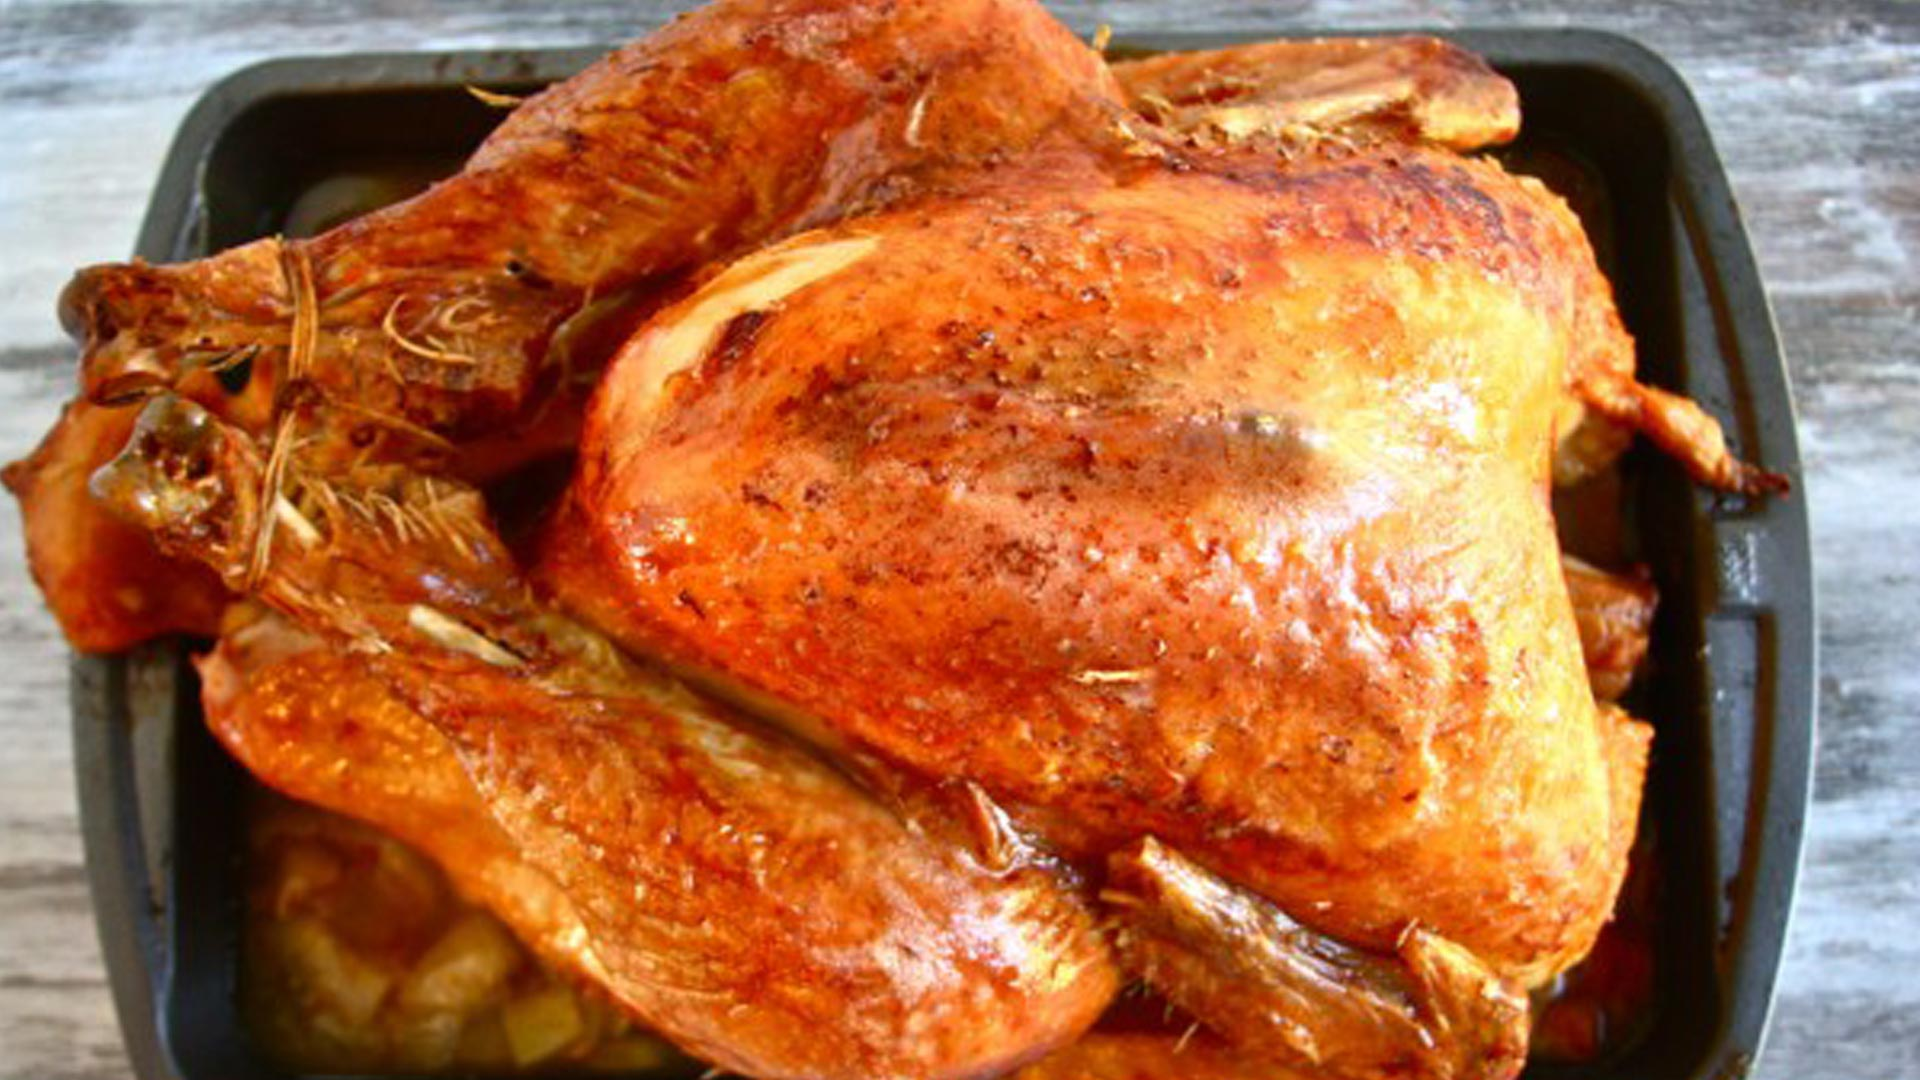 With so many options for turkey brines, try this brown sugar and cayenne pepper blend for extra flavor.